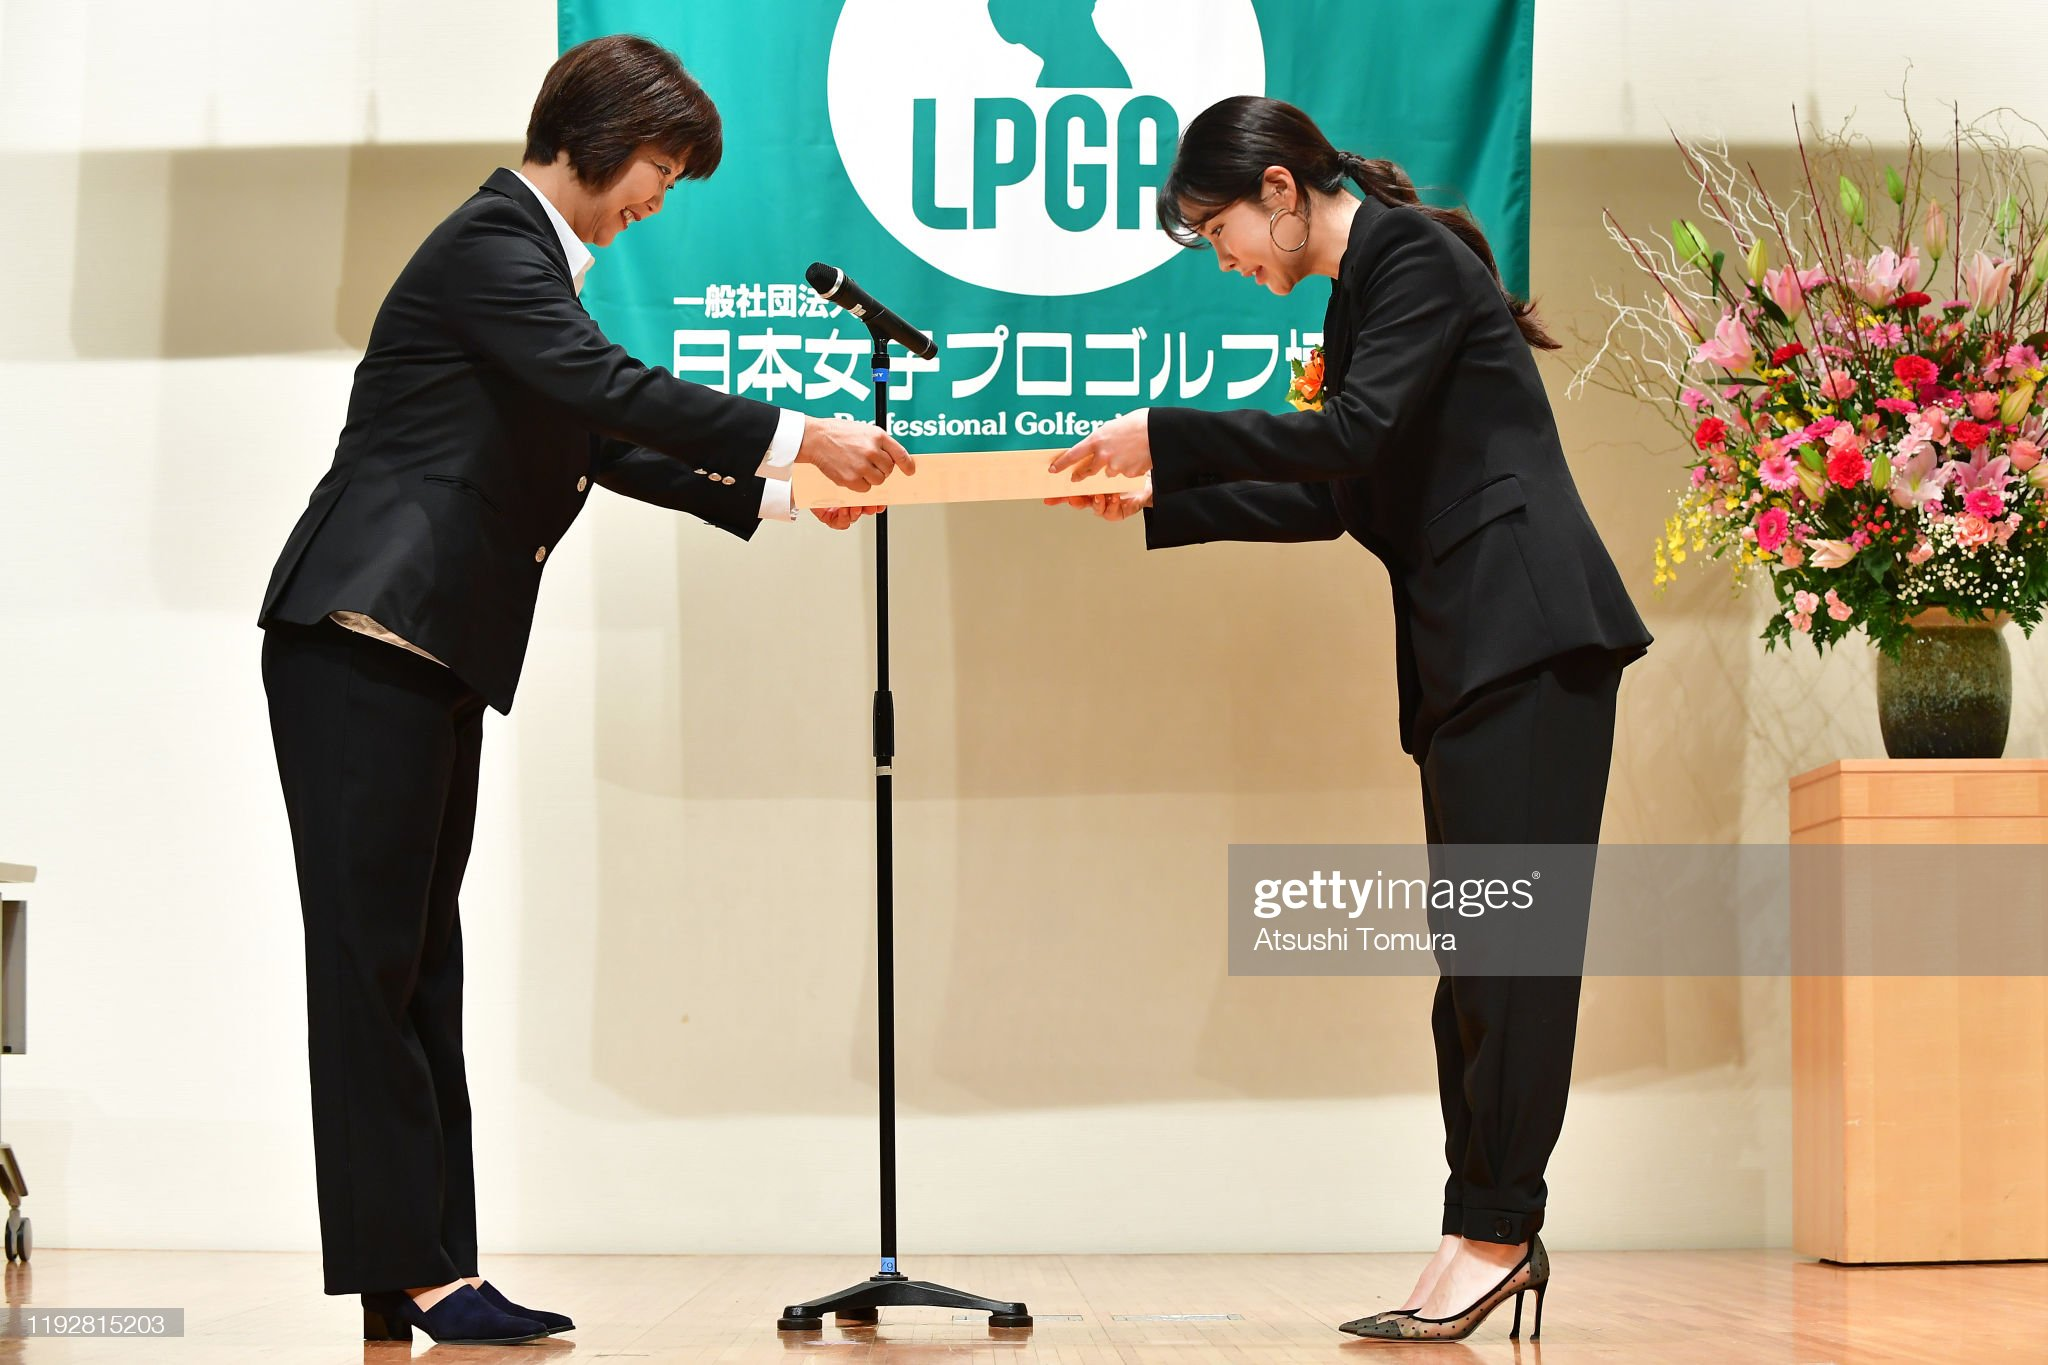 https://media.gettyimages.com/photos/shinae-ahn-of-south-korea-receives-a-certificate-from-japanese-lpga-picture-id1192815203?s=2048x2048